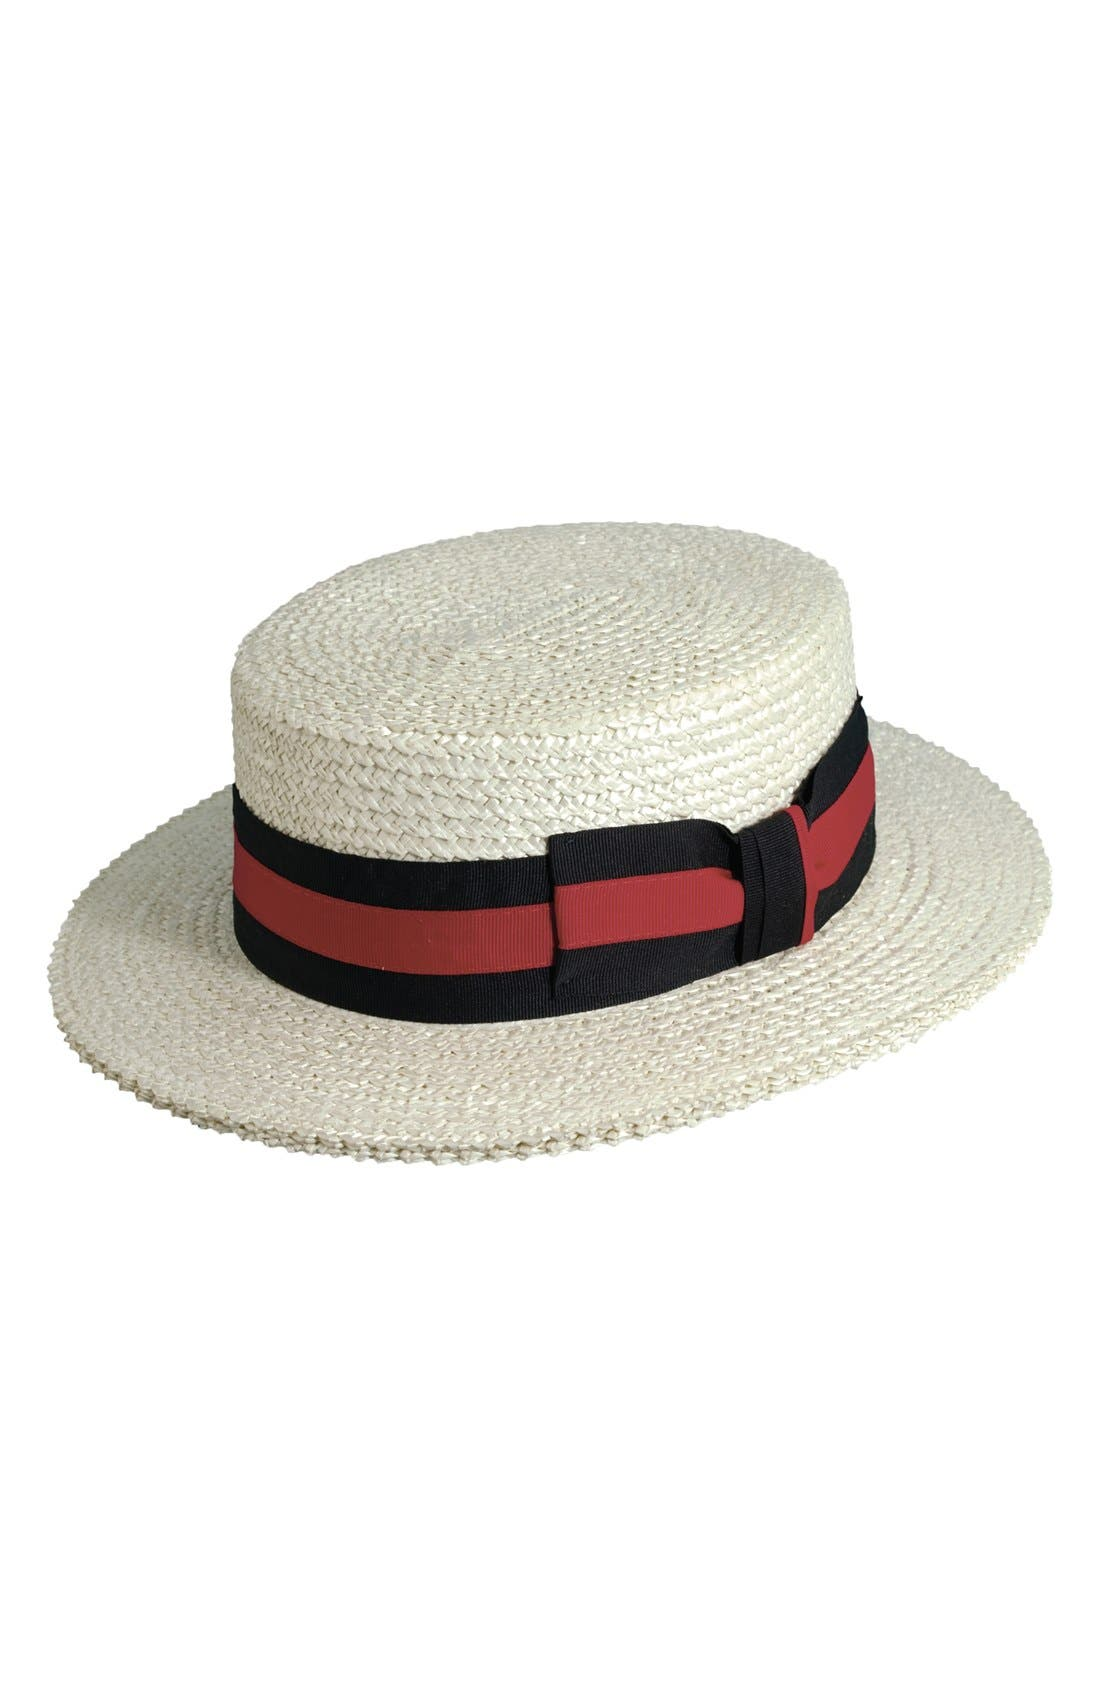 SCALA, Straw Boater Hat, Main thumbnail 1, color, BLEACH